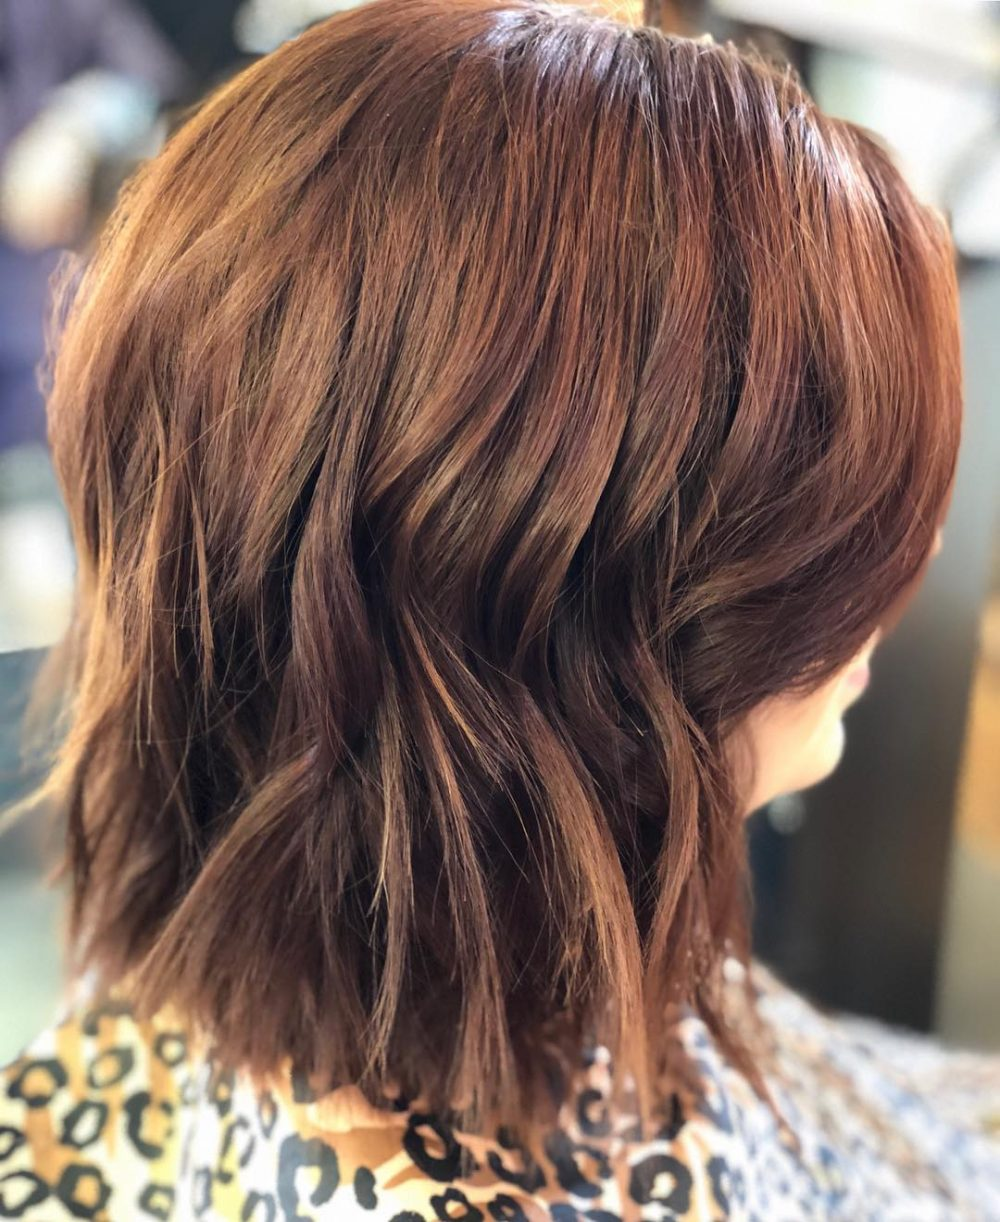 Simple Choppy Textured Bob Hairstyle